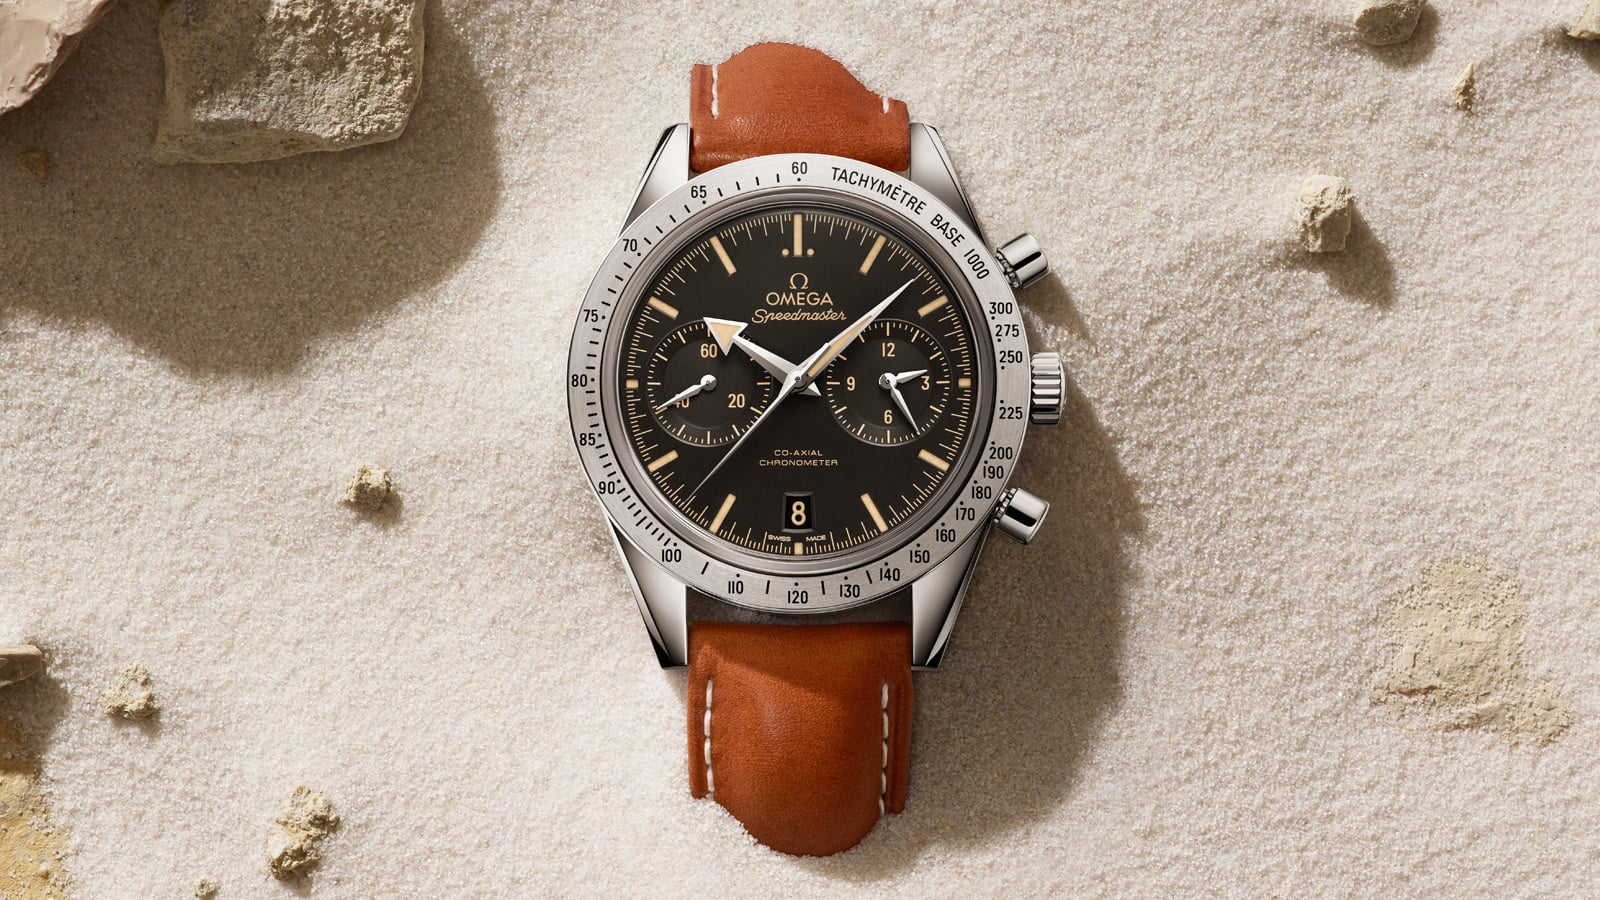 Speedmaster '57 La Collection - Diapositive 1 - 28766